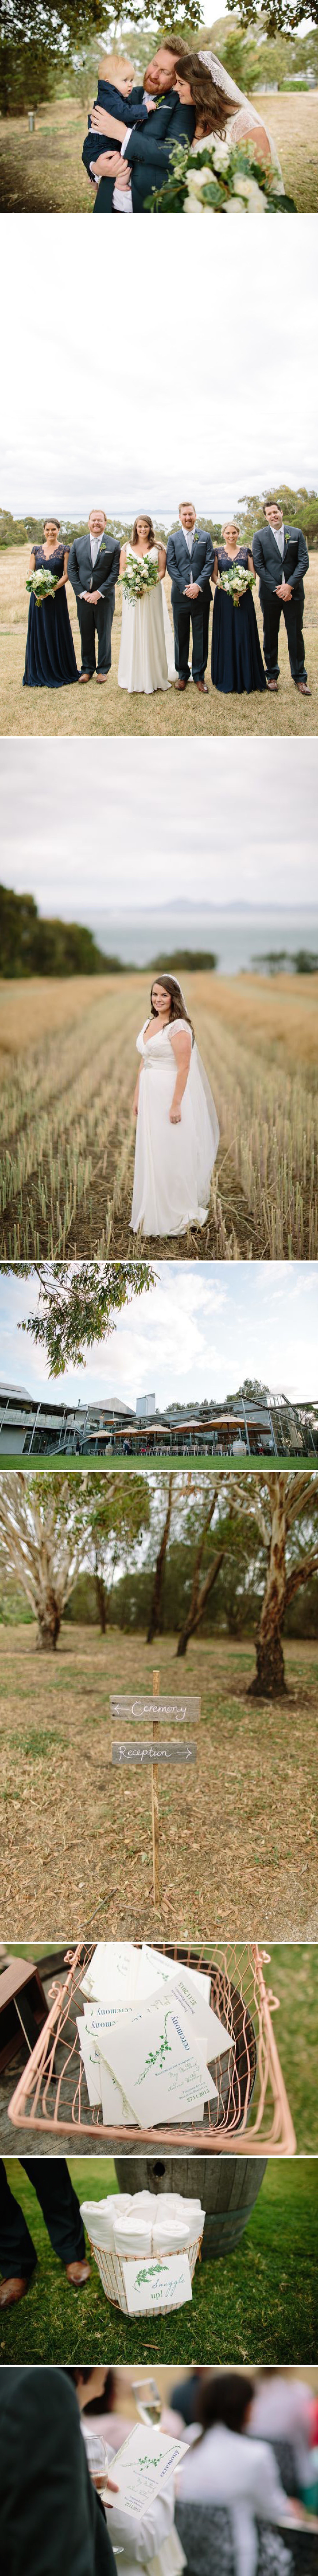 Modern Winery Wedding in Australia | Beacon Lane Real Weddings